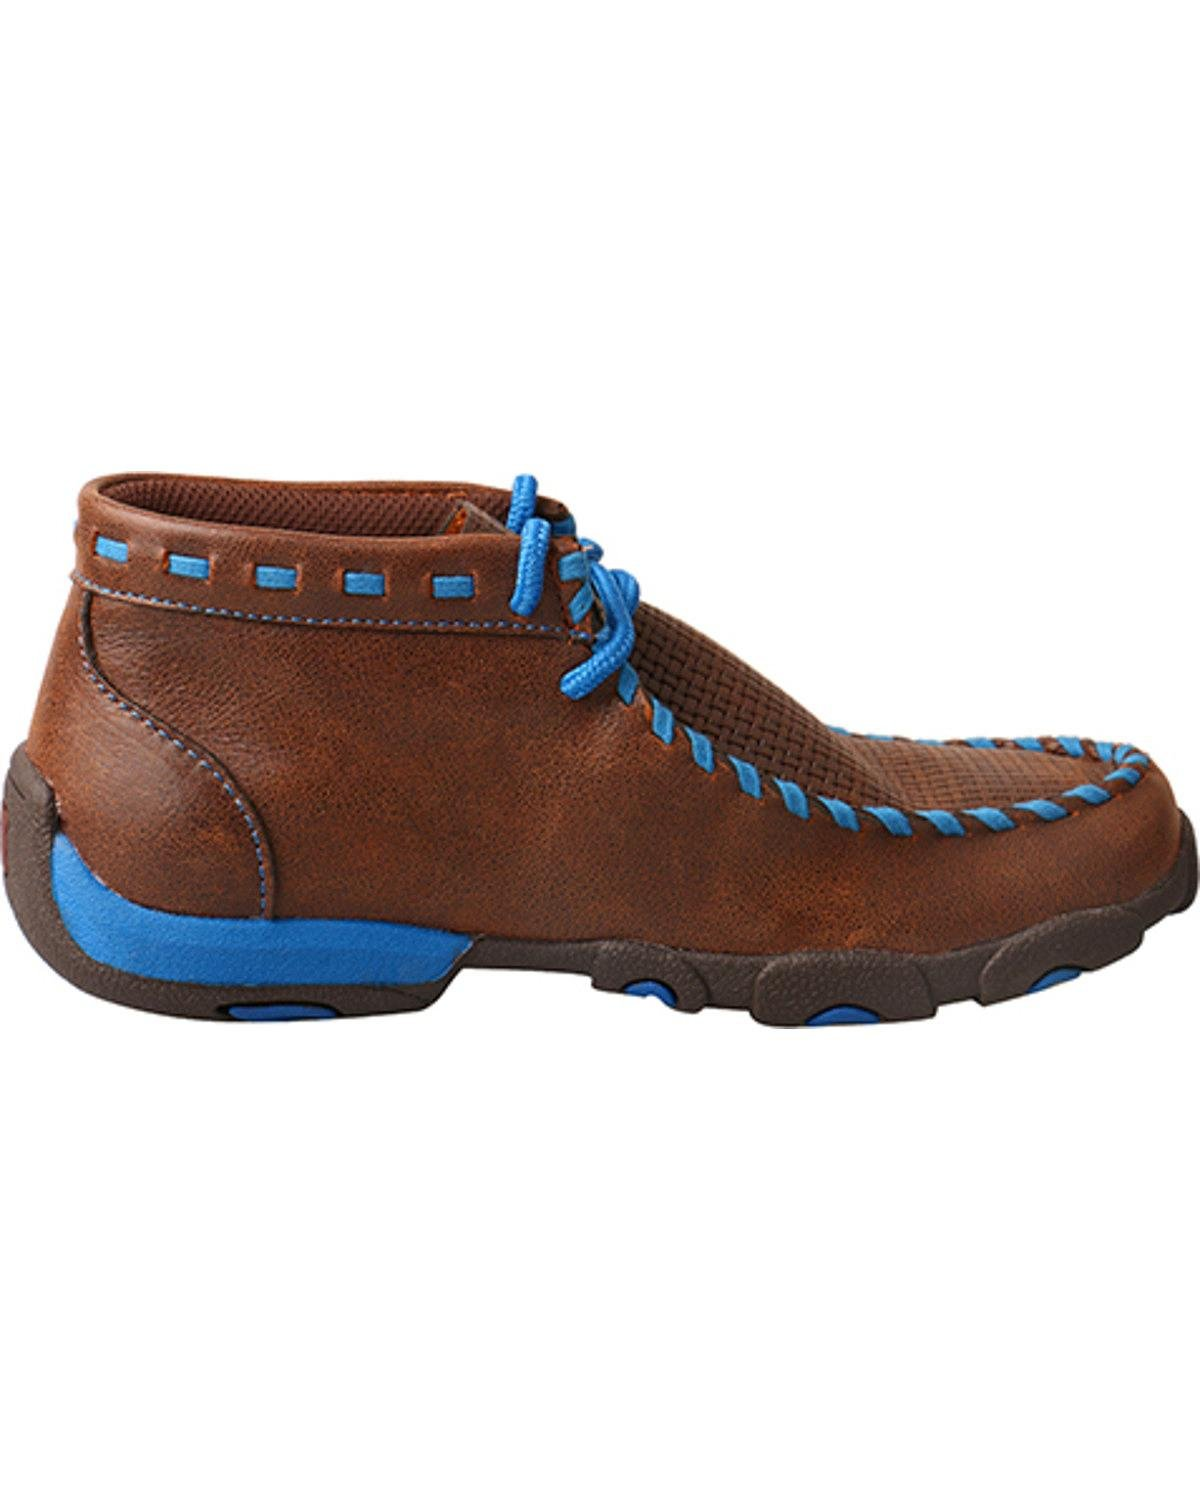 Twisted X Boys Blue Lace Driving Moccasin Boot Moc Toe TWISTED X BOOTS